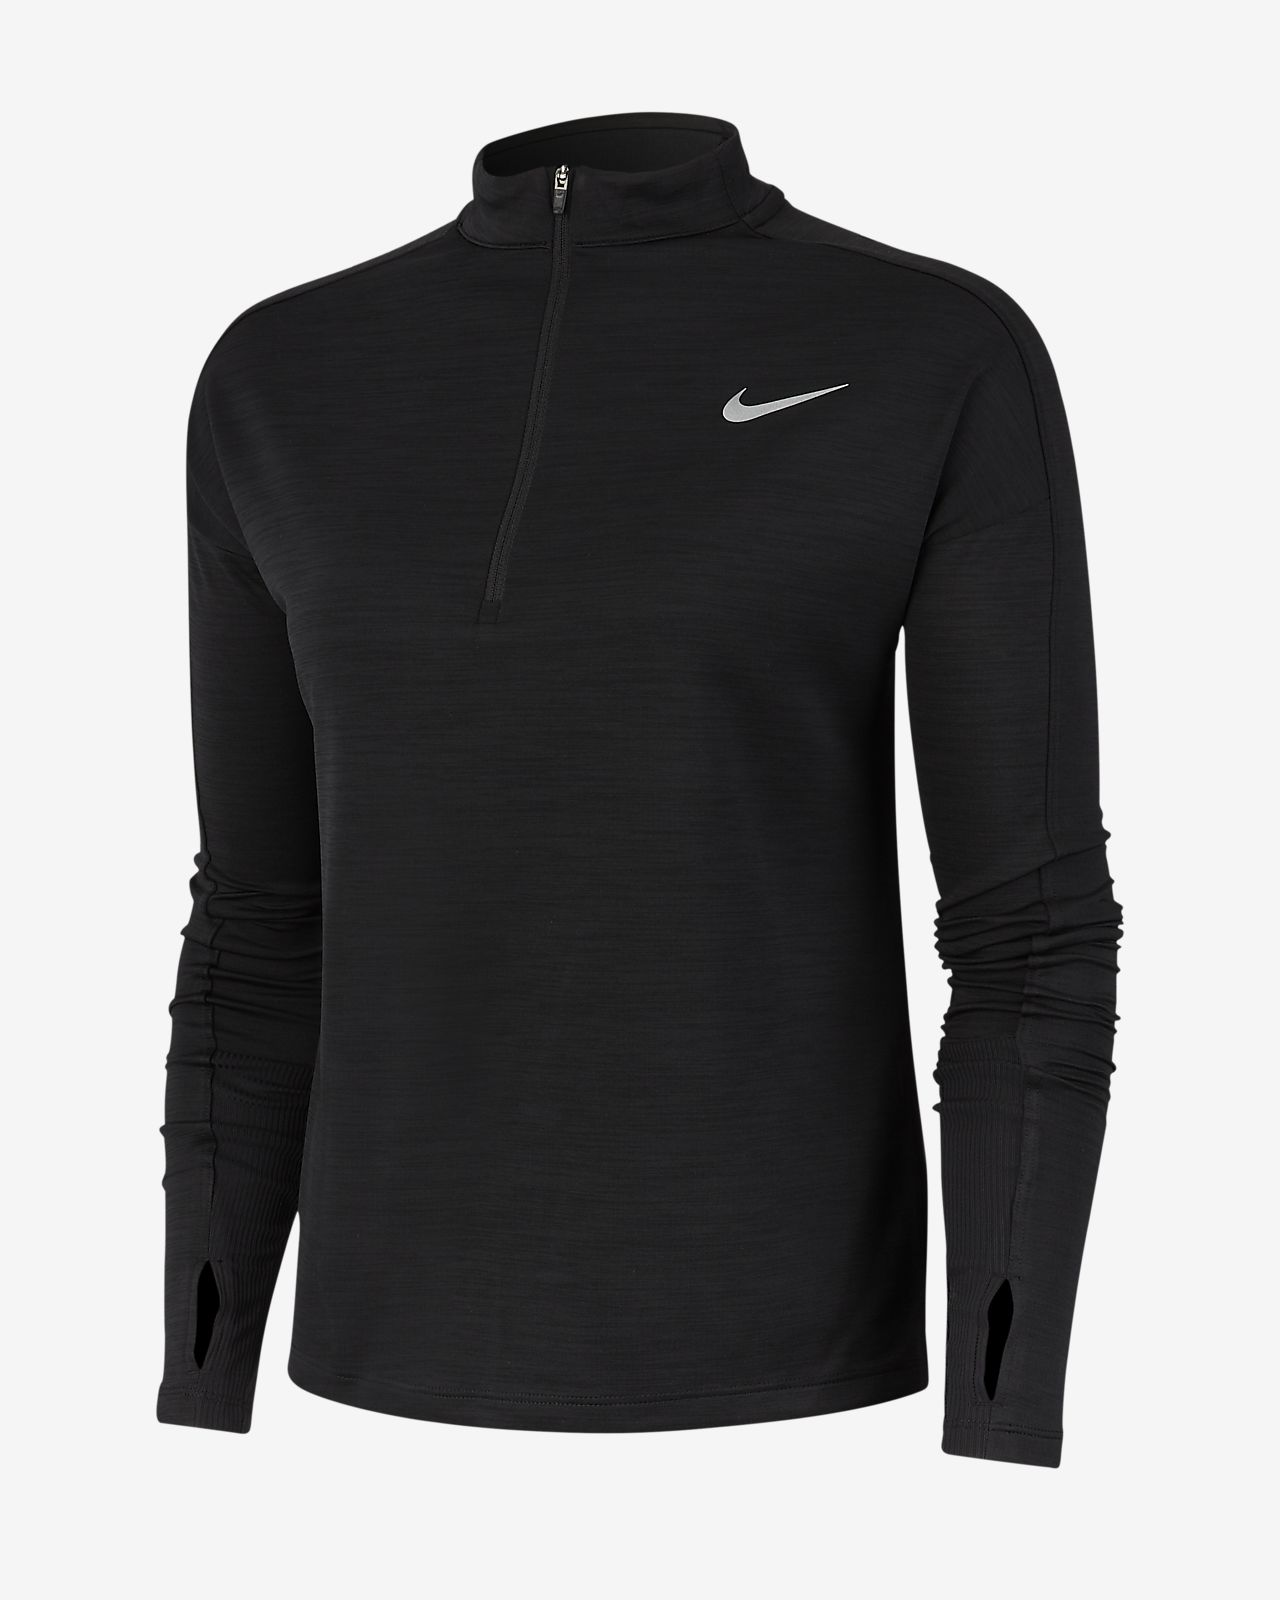 Nike Pacer Women's Half-Zip Running Top